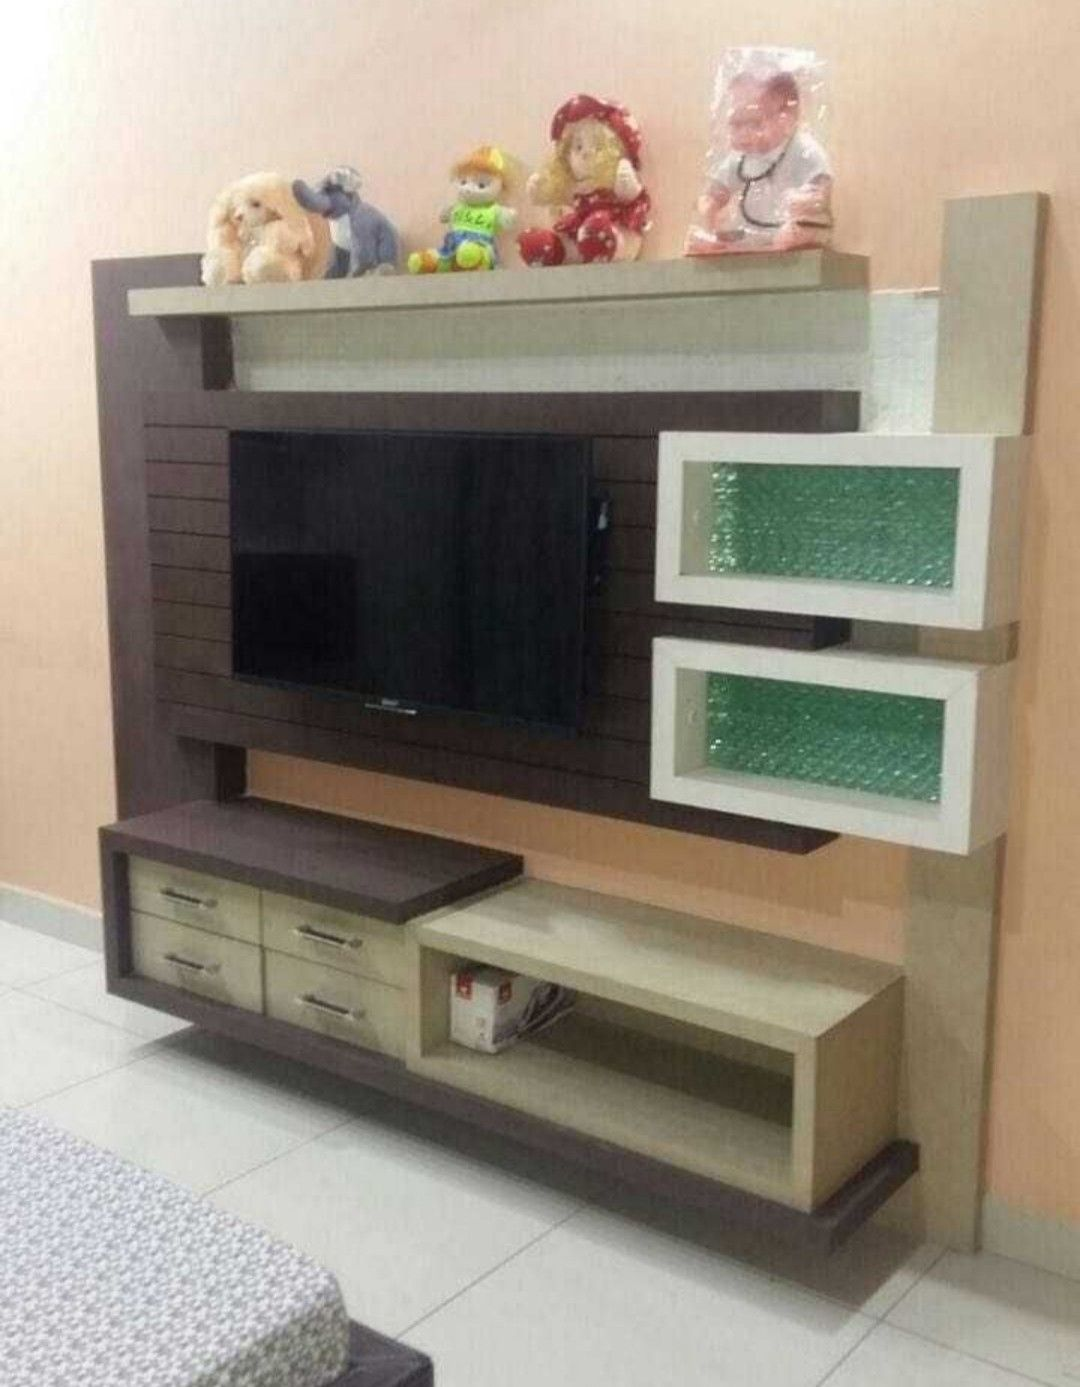 Latest Tv Unit Design: Lcd Unit Design, Lcd Panel Design, Tv